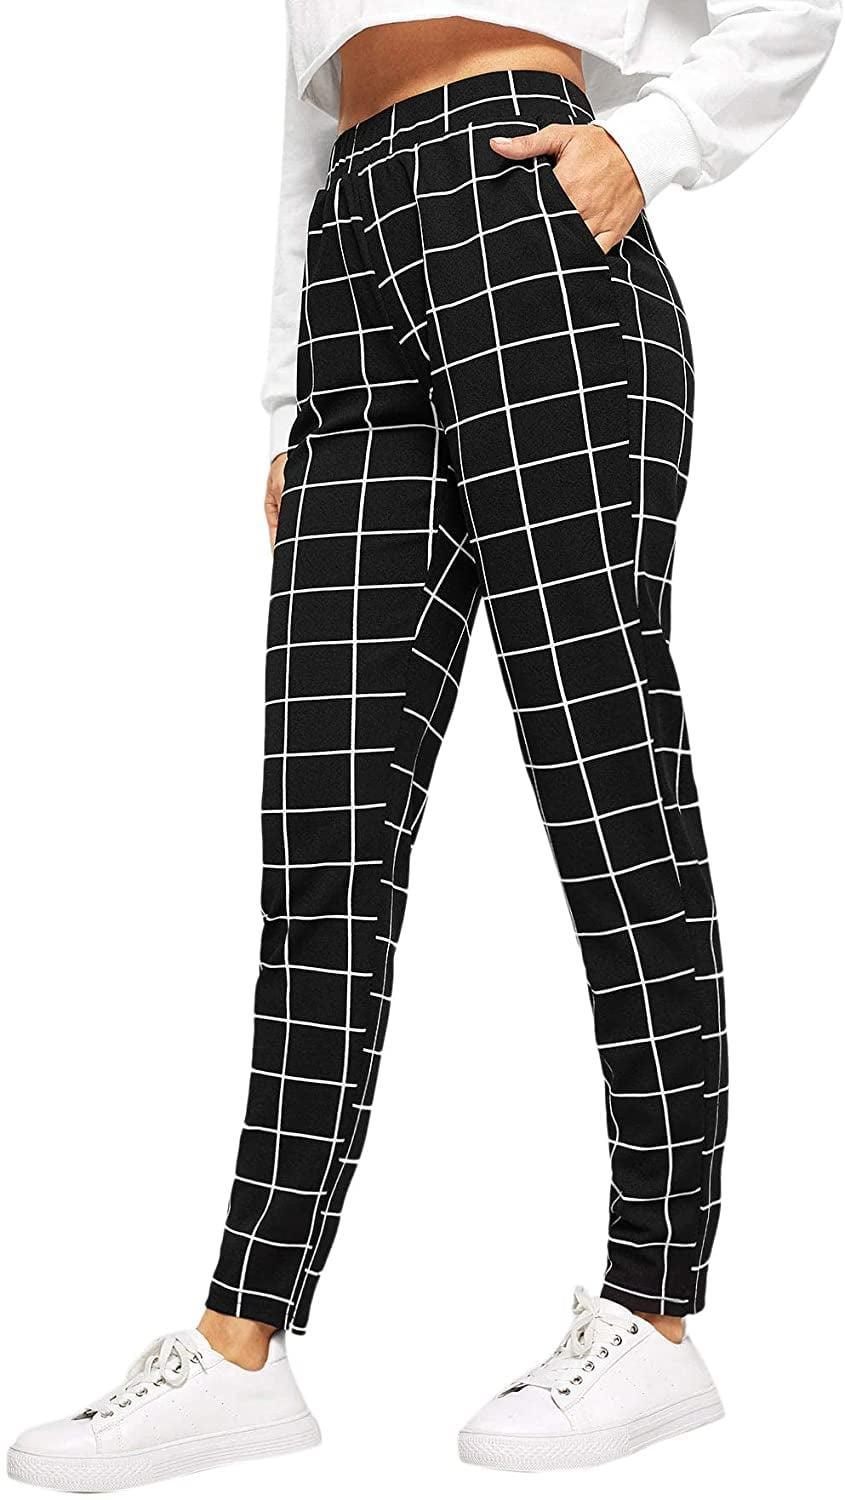 <p>These <span>SweatyRocks Casual High Waist Skinny Pants</span> ($10-$23) come in so many patterns.</p>